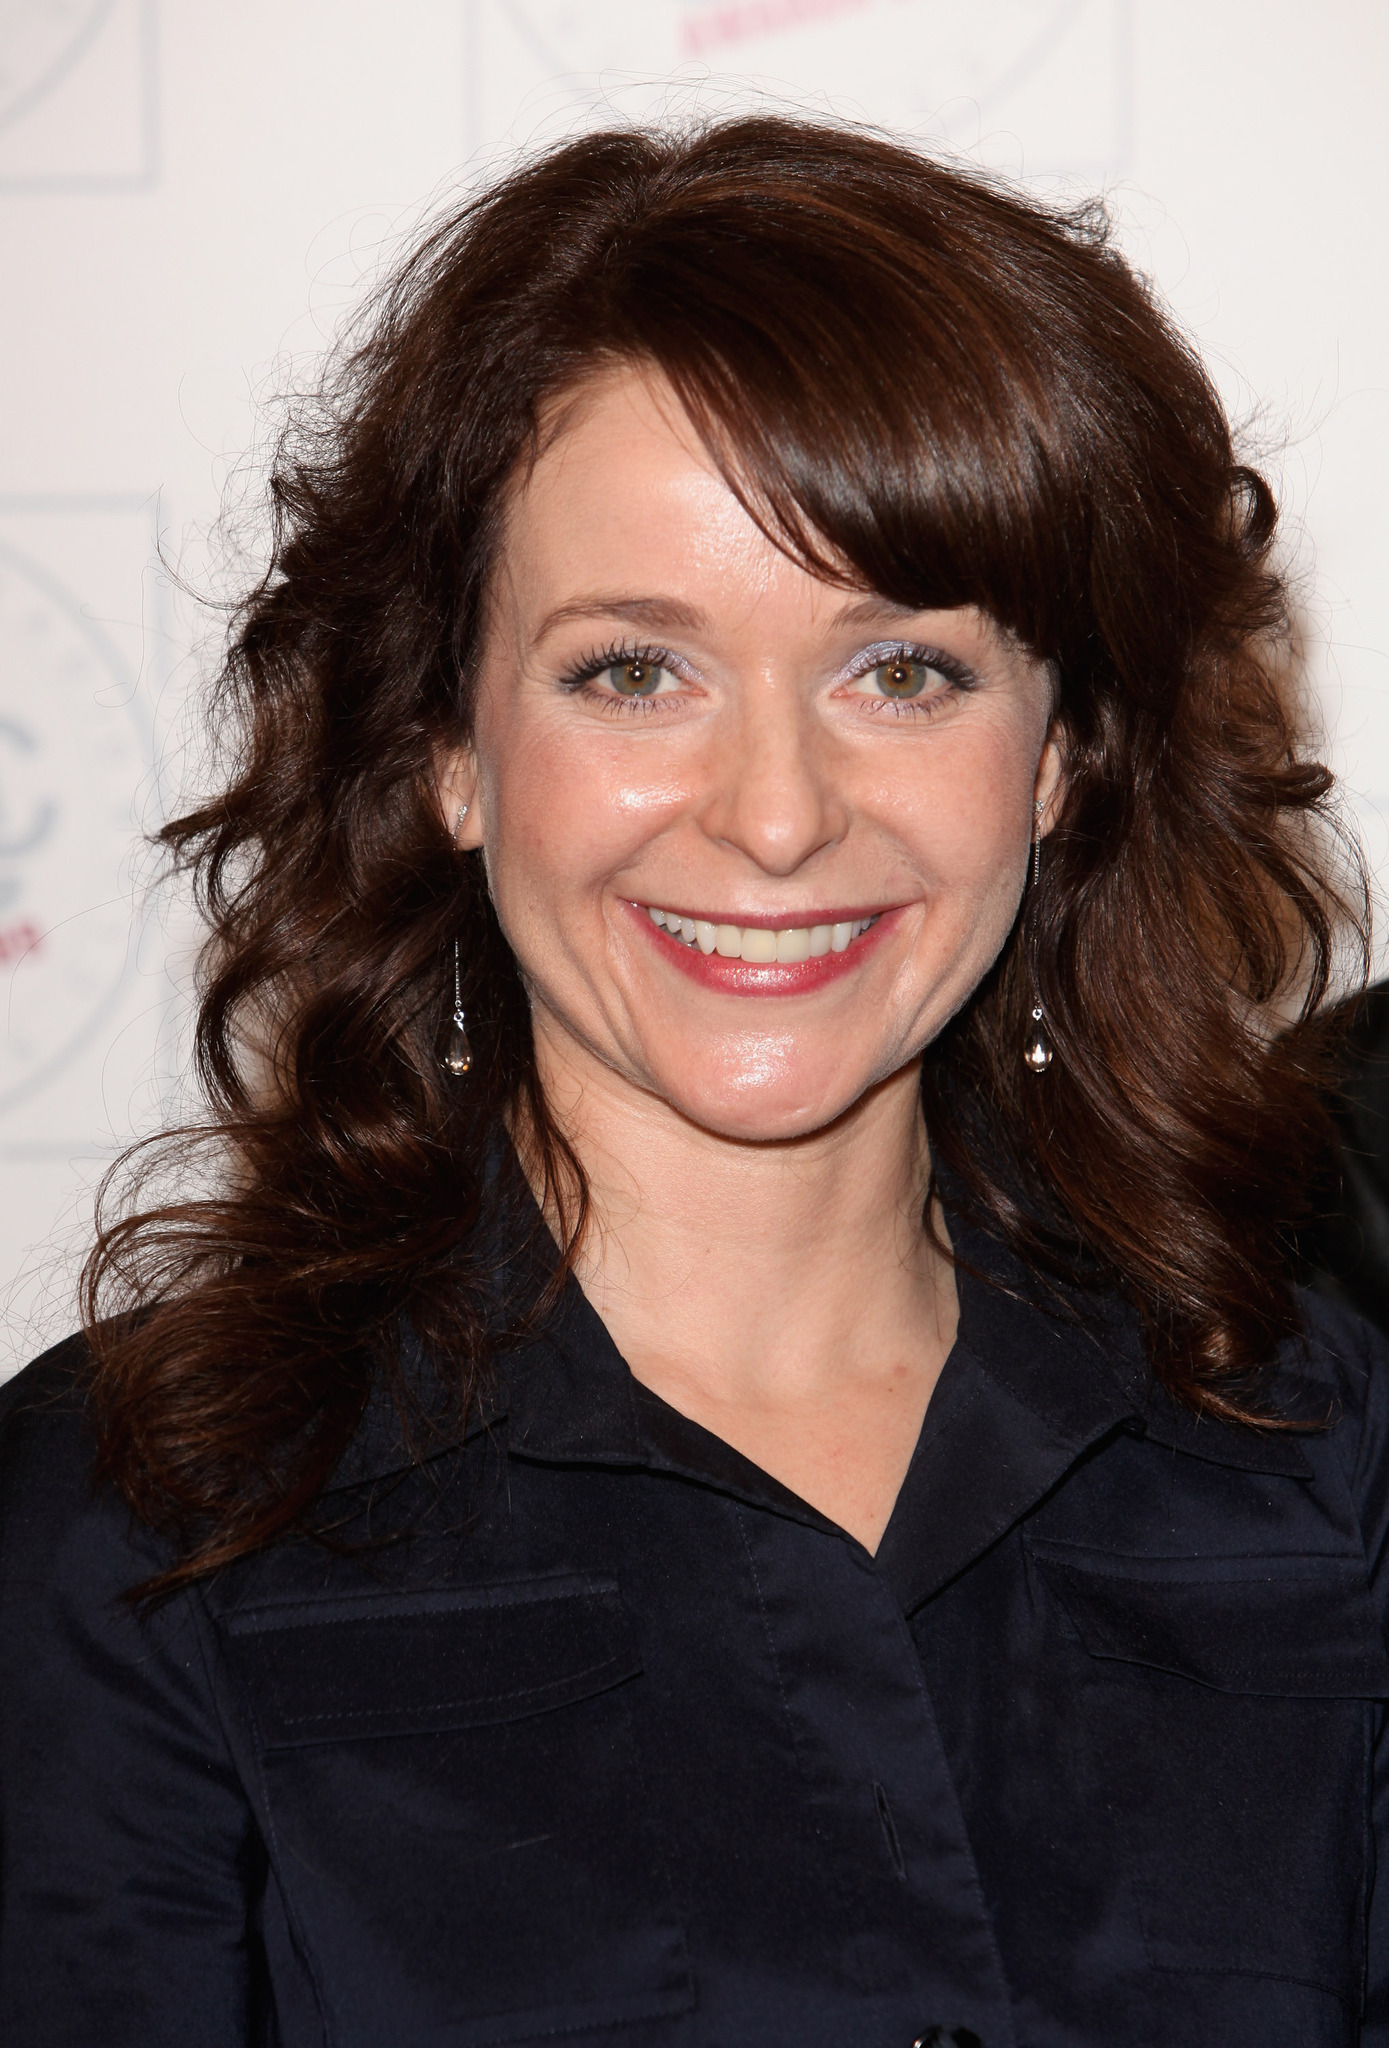 Julia Sawalha (born 1968)